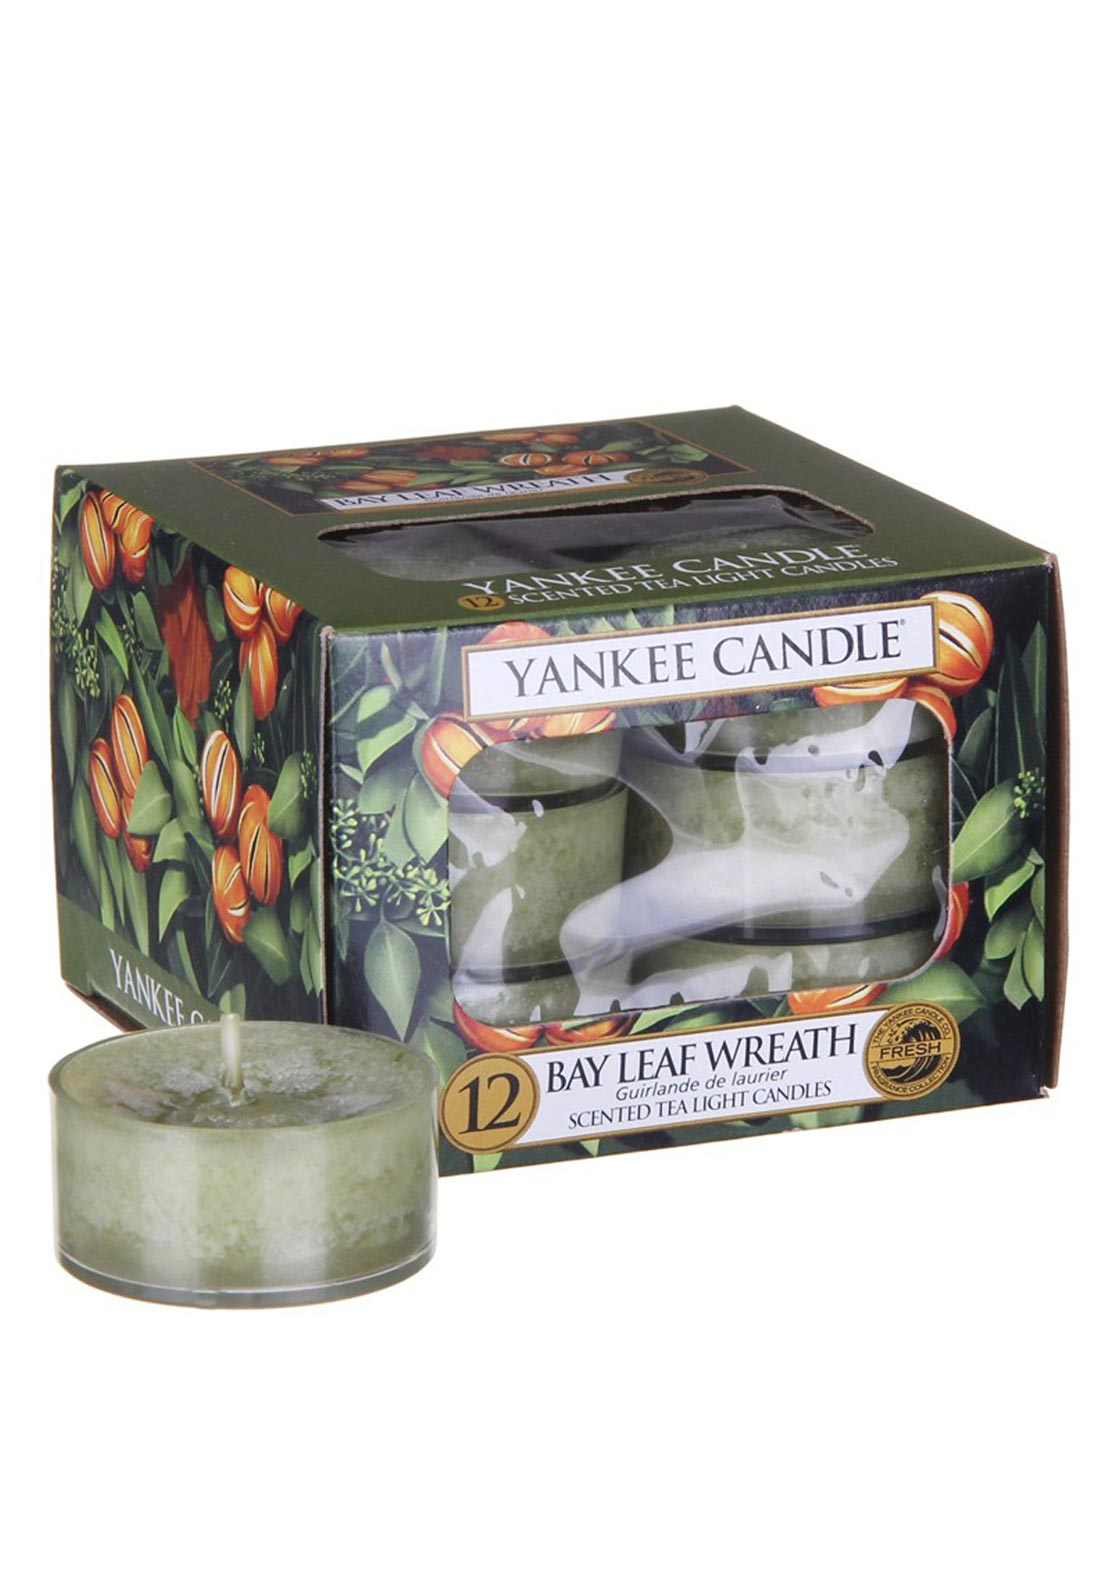 Yankee Candle 12 Scented Tea Light Candles, Bay Leaf Wreath